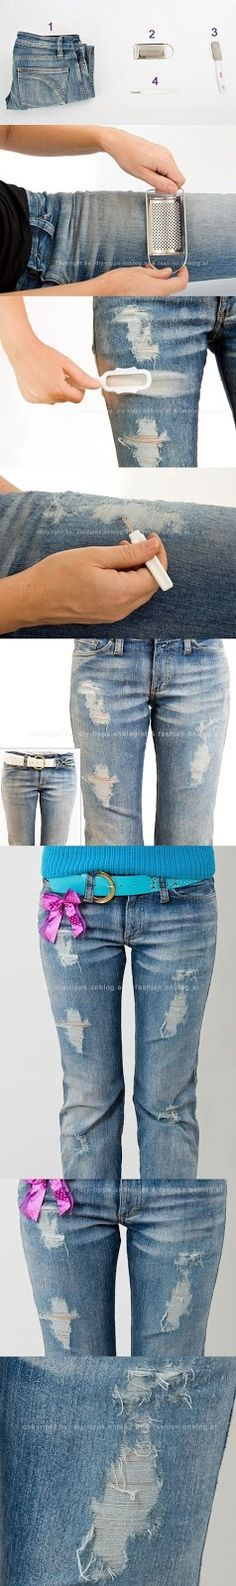 Easy how-to on de-stressing your jeans!